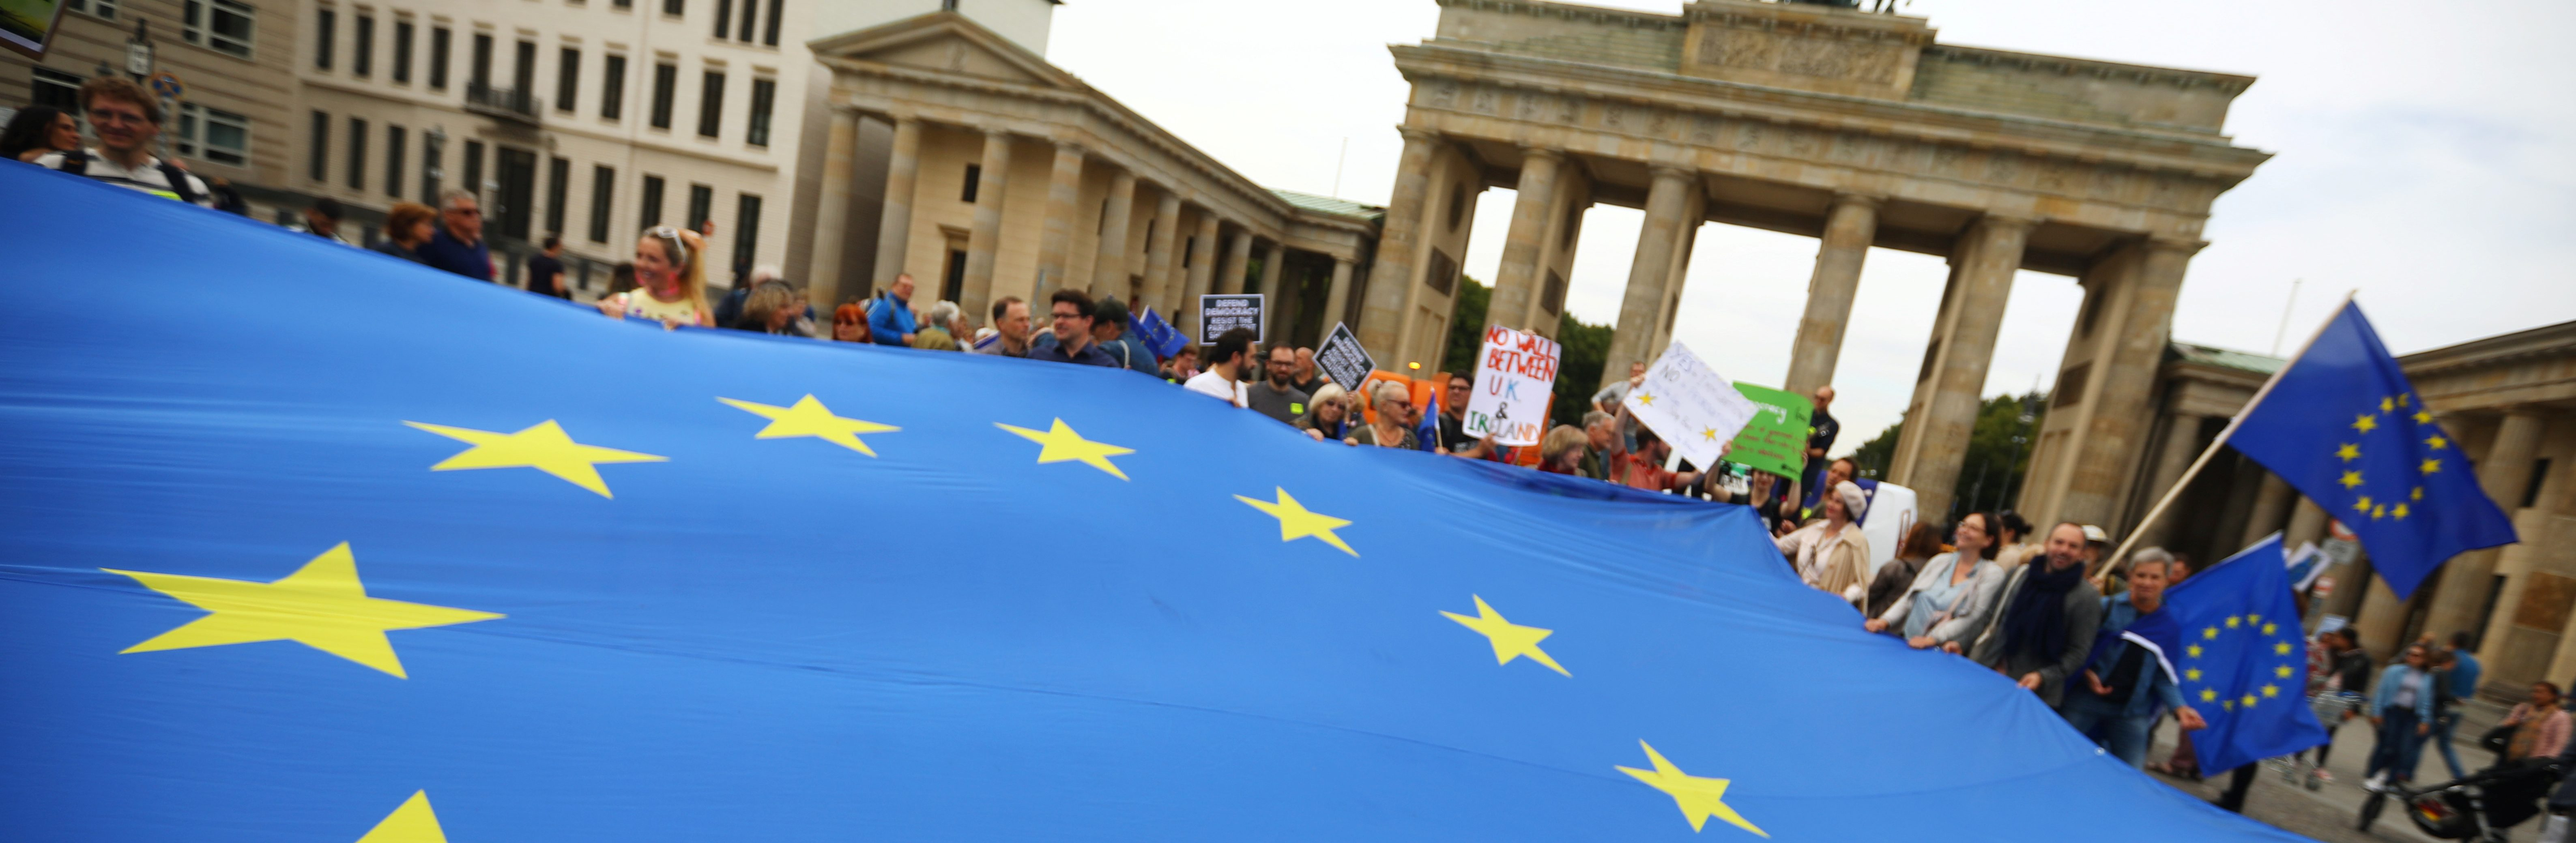 Protests in Berlin against U.K. Prime Minister Boris Johnson's Brexit-motivated suspension of the British Parliament, September 7, 2019. (Hannibal Hanschke/Reuters)